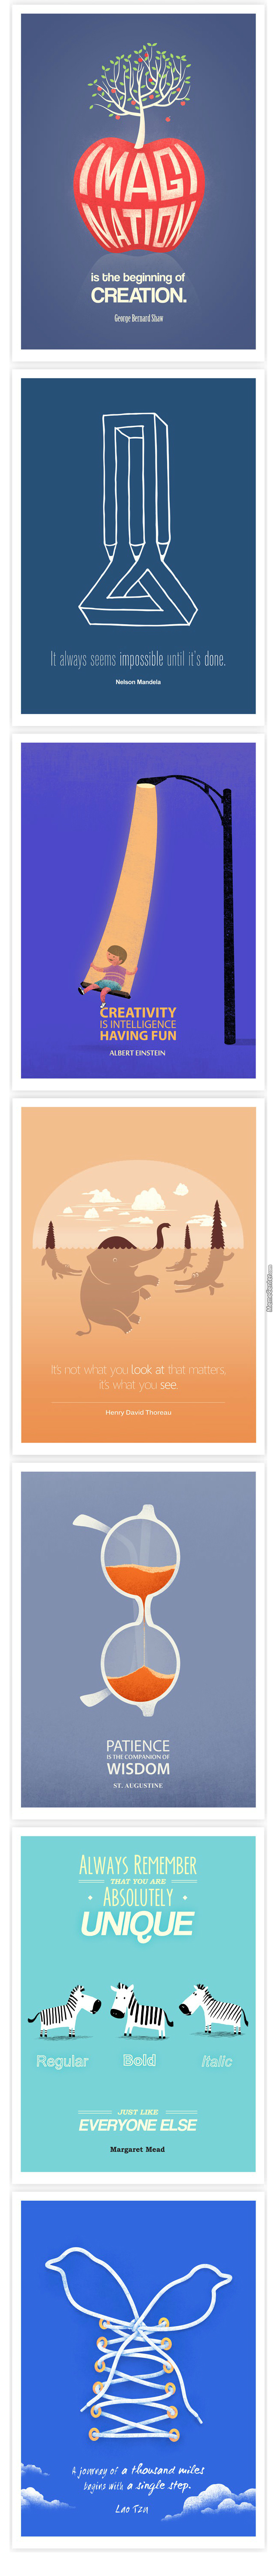 Some Nice Quotes, With Some Nice Illustrations ;)